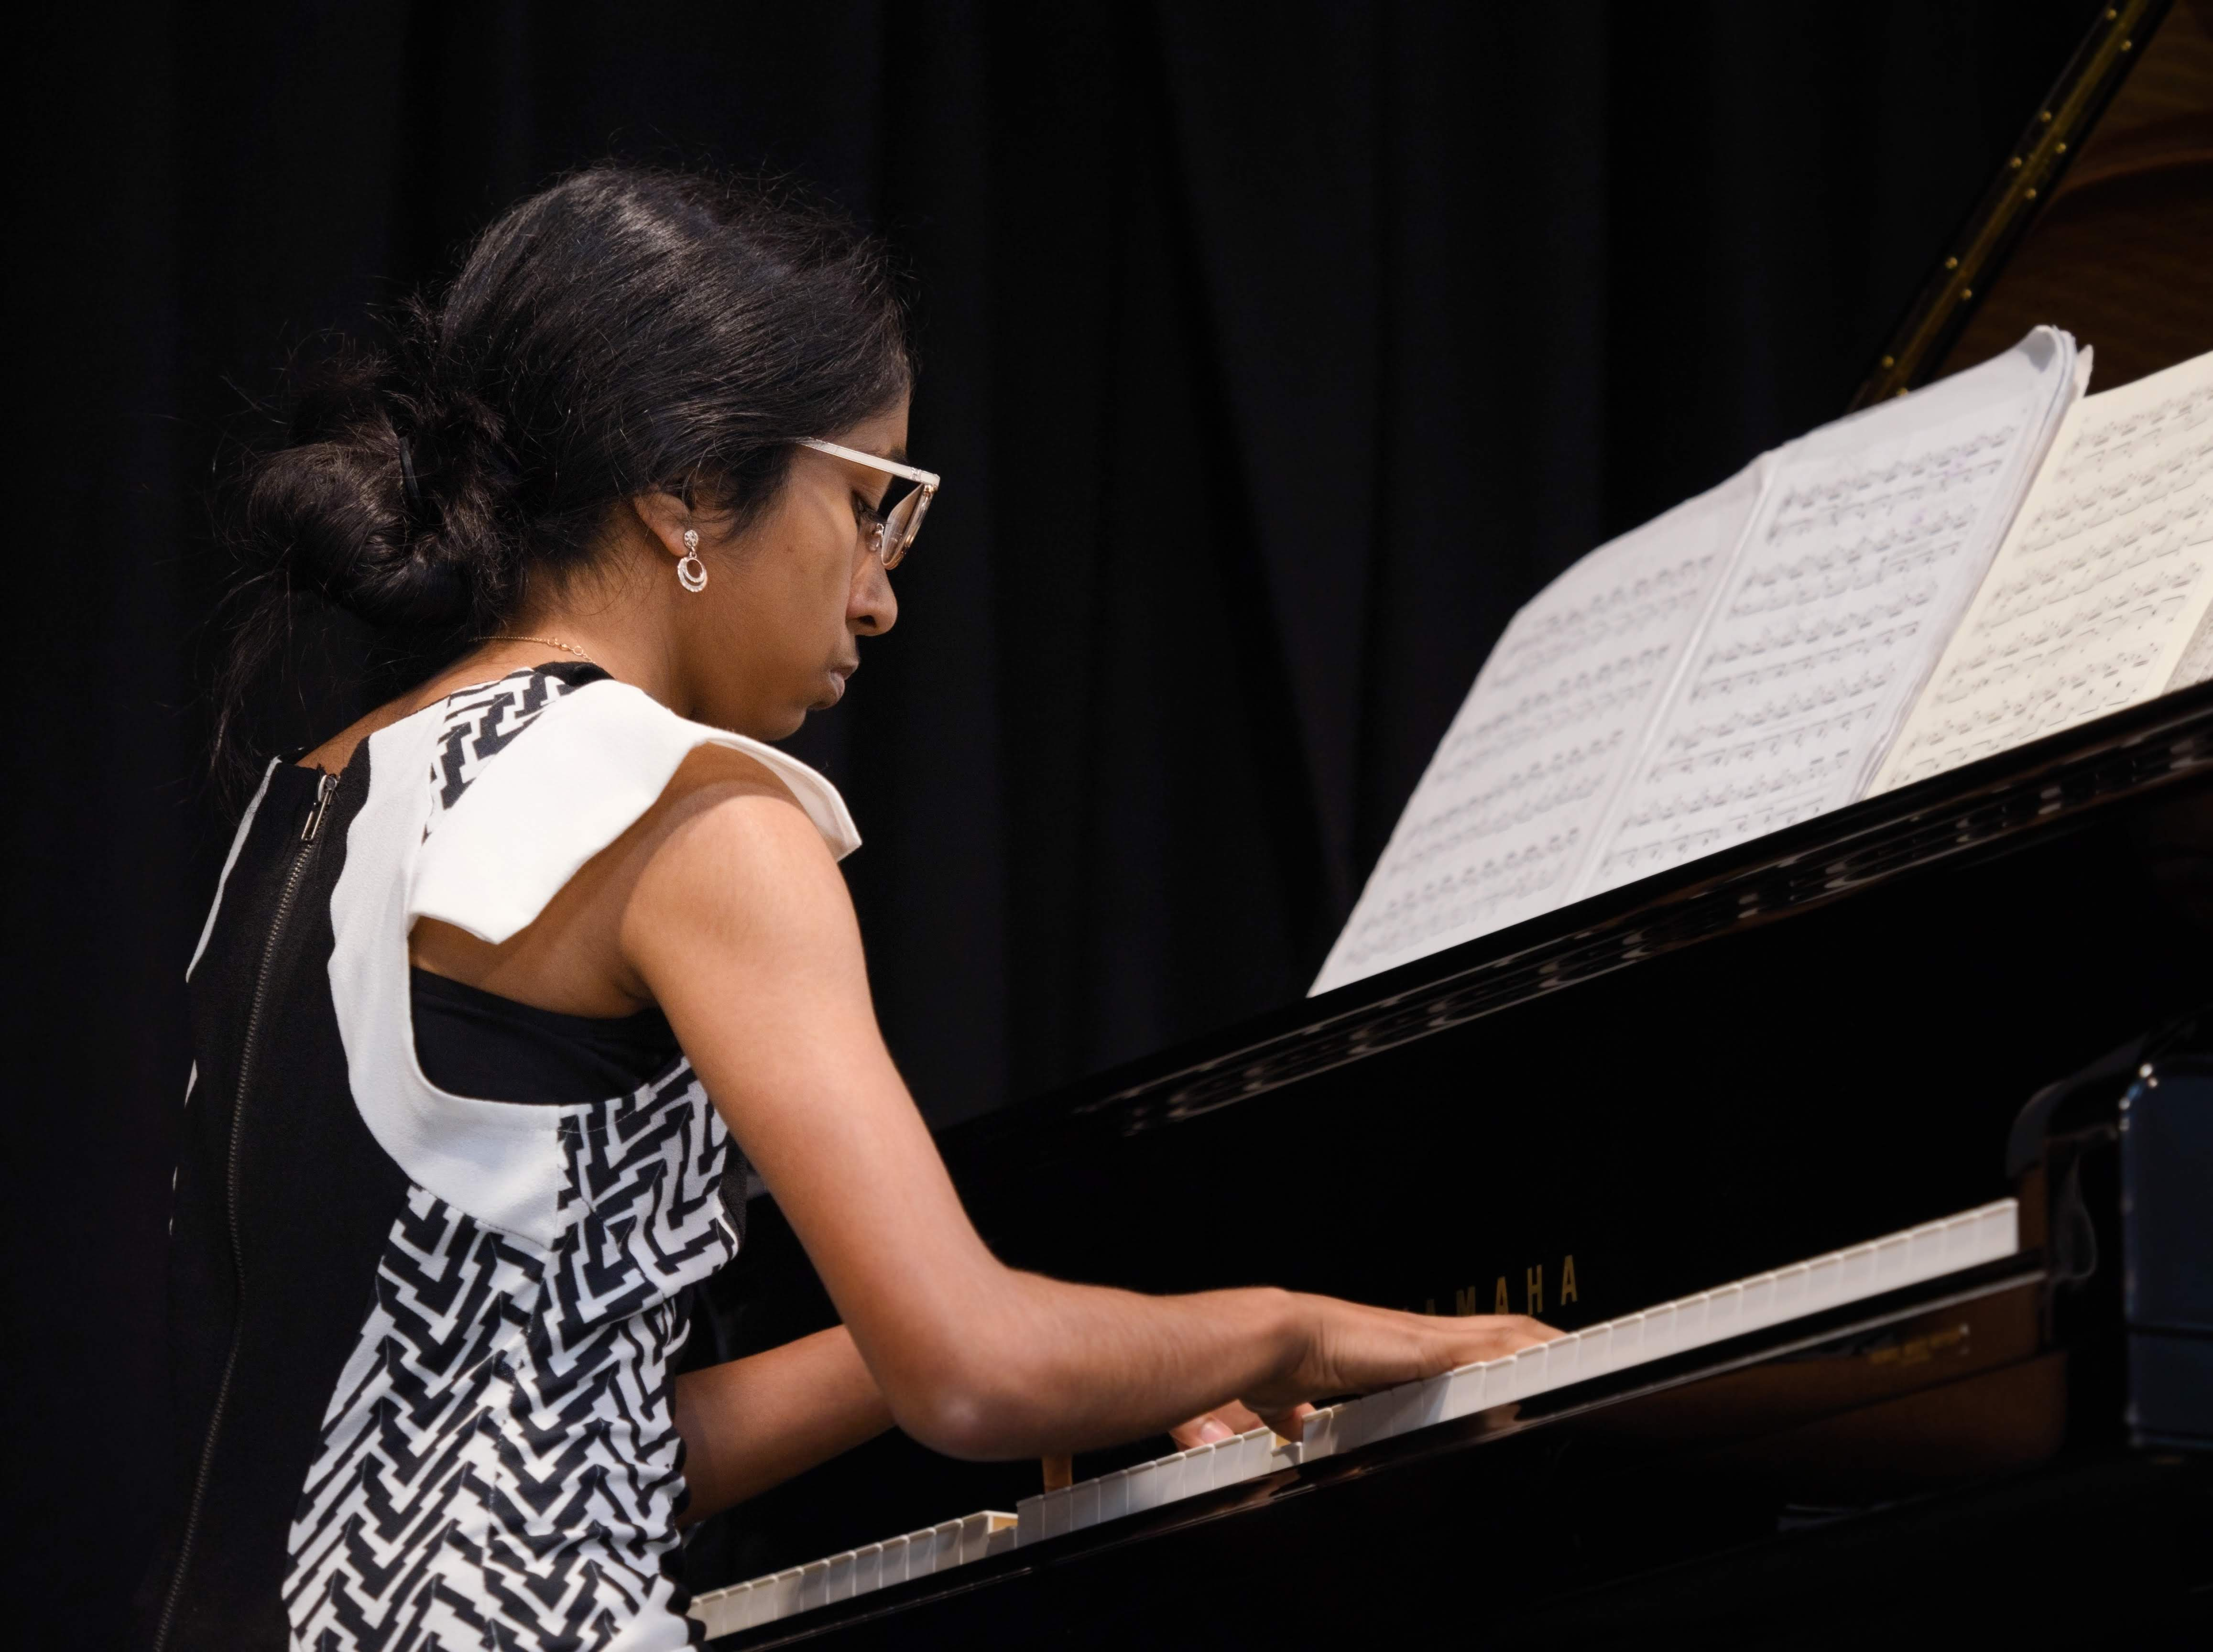 WGE Pianoforte Day 3 Annabelle Rajasingham Displays Her Skills on the Piano